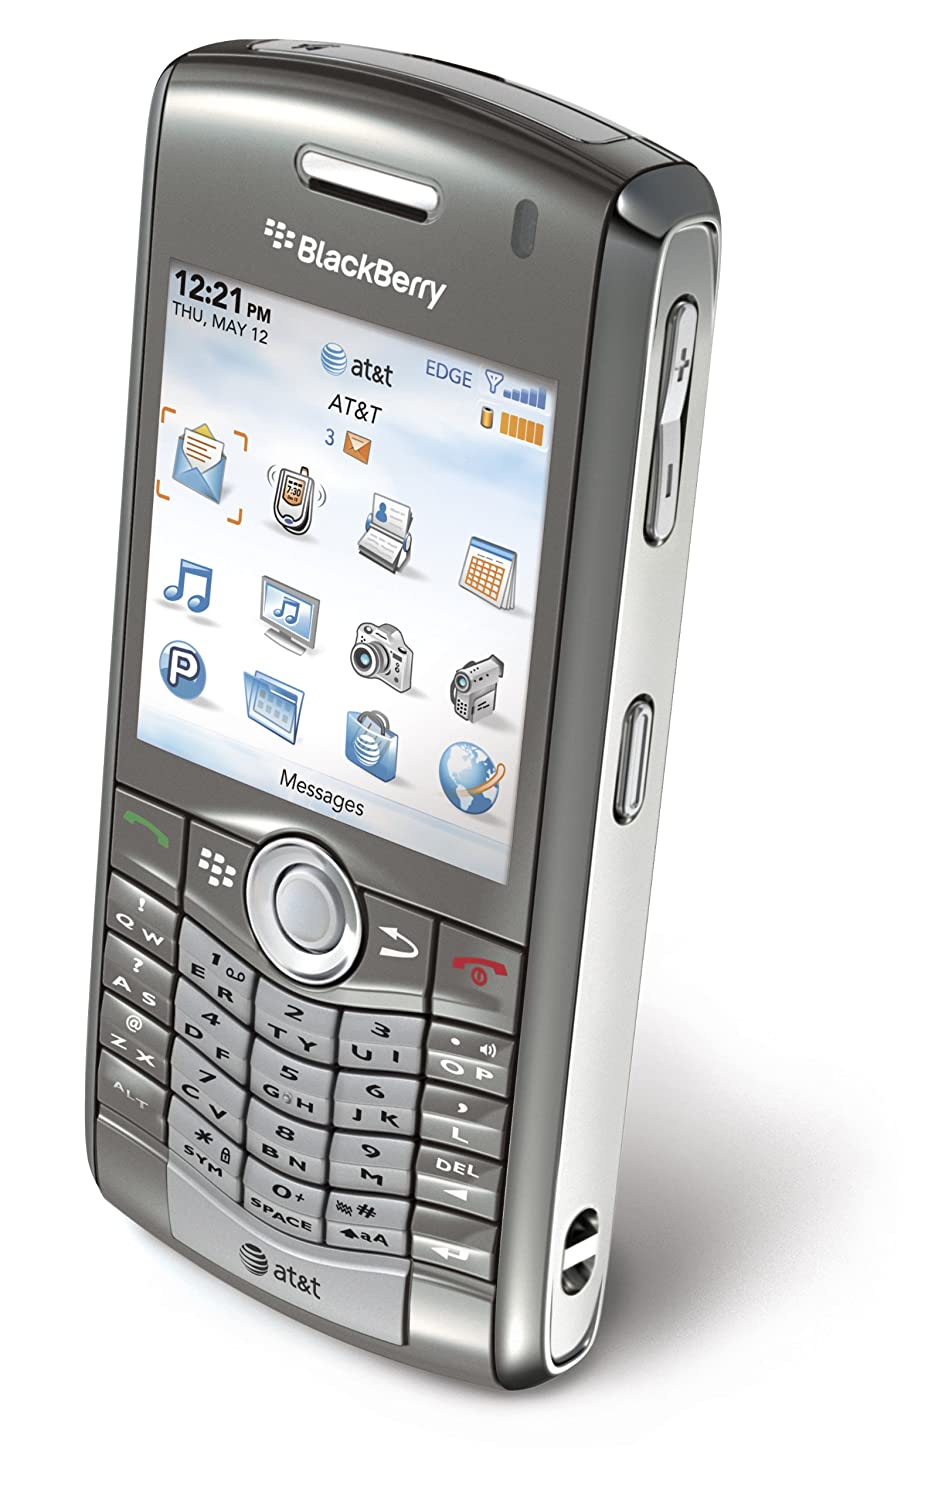 Blackberry pearl 8100 mobile phones images blackberry pearl 8100 - Amazon Com Blackberry 8110 Pearl Unlocked Phone Black Cell Phones Accessories